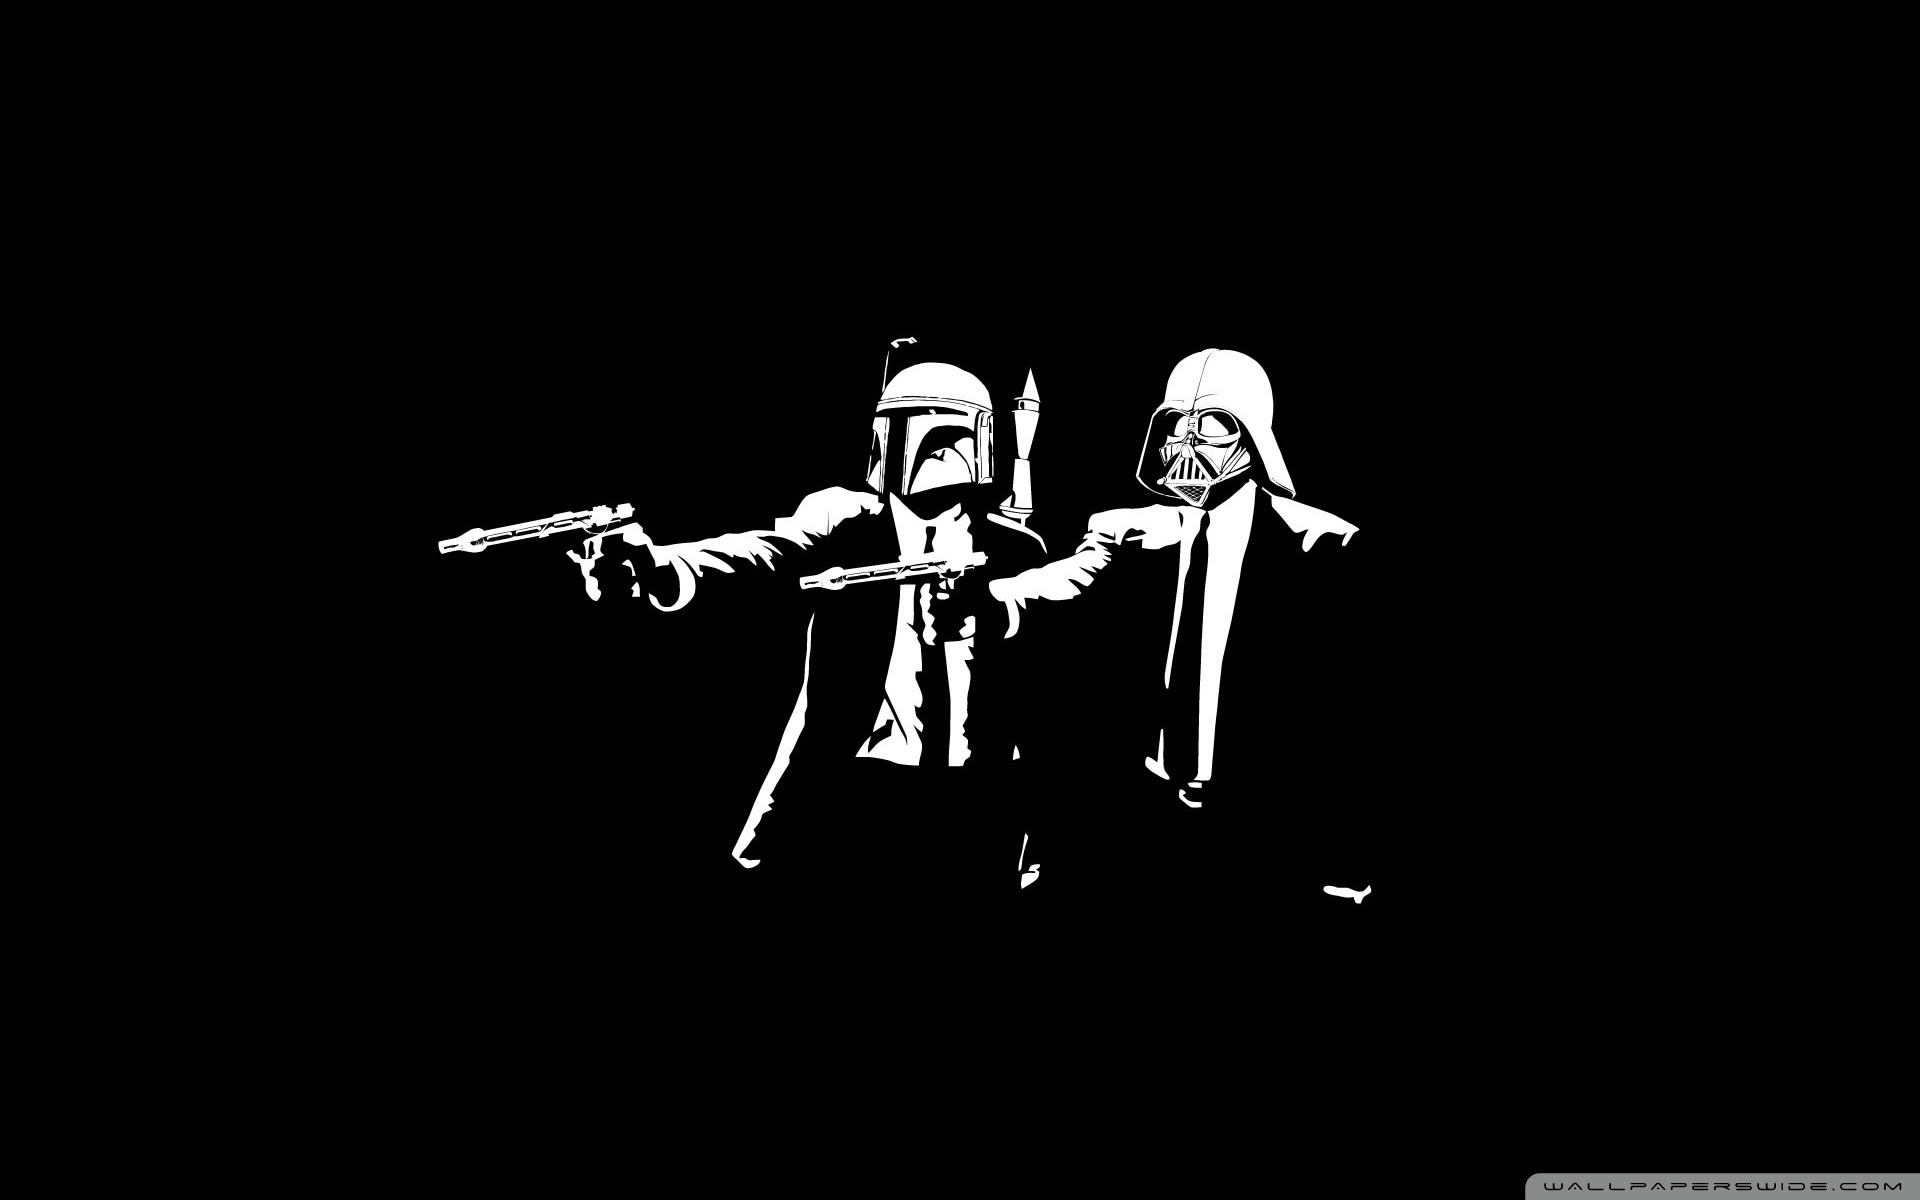 Star Wars Pulp Fiction Ultra Hd Desktop Background Wallpaper For